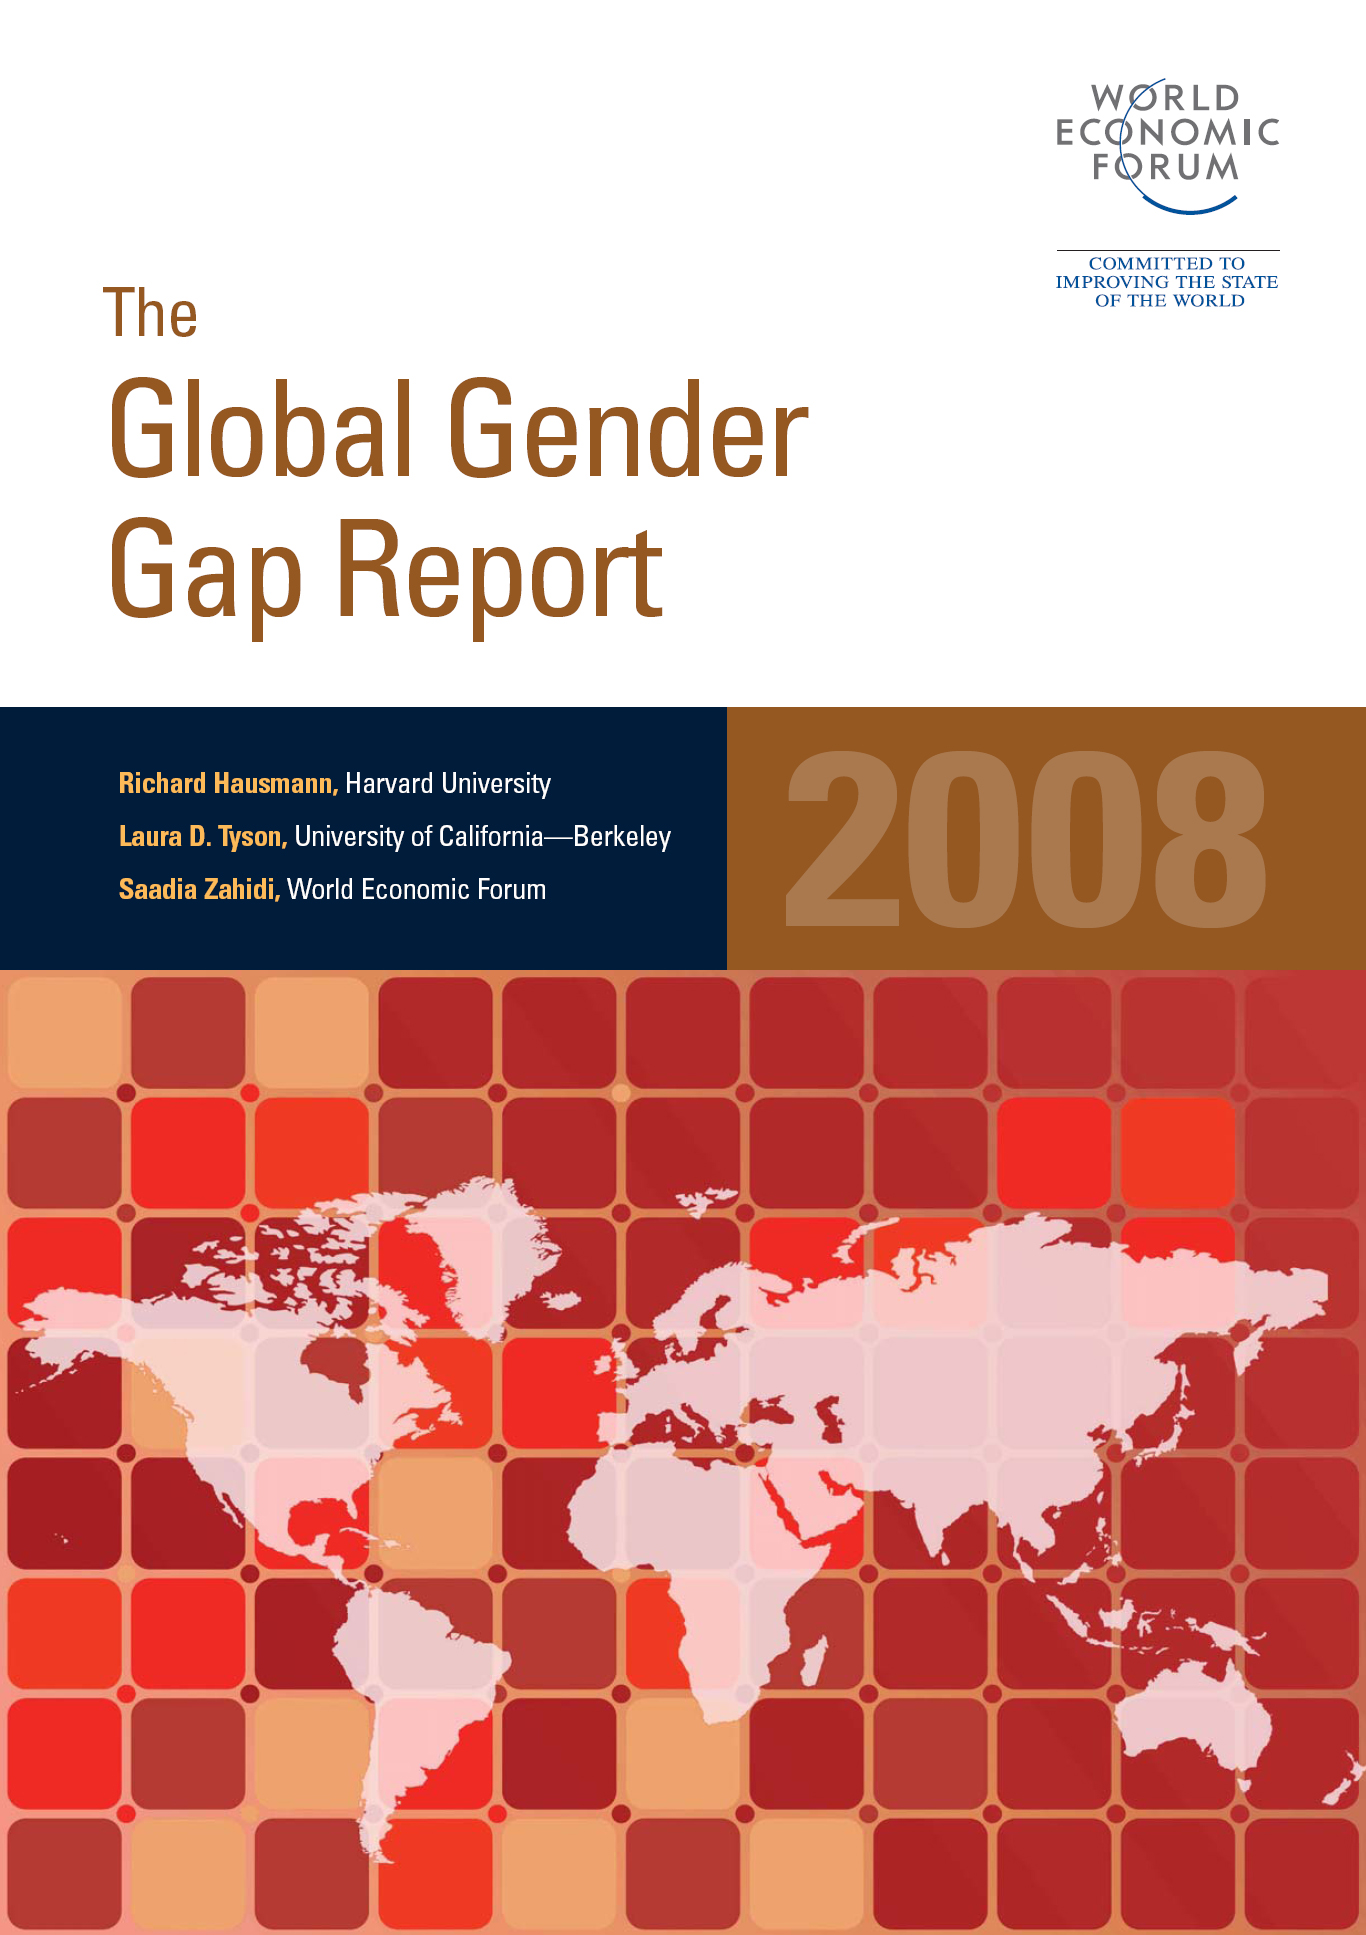 file gender gap report 2008 cover jpg file gender gap report 2008 cover jpg